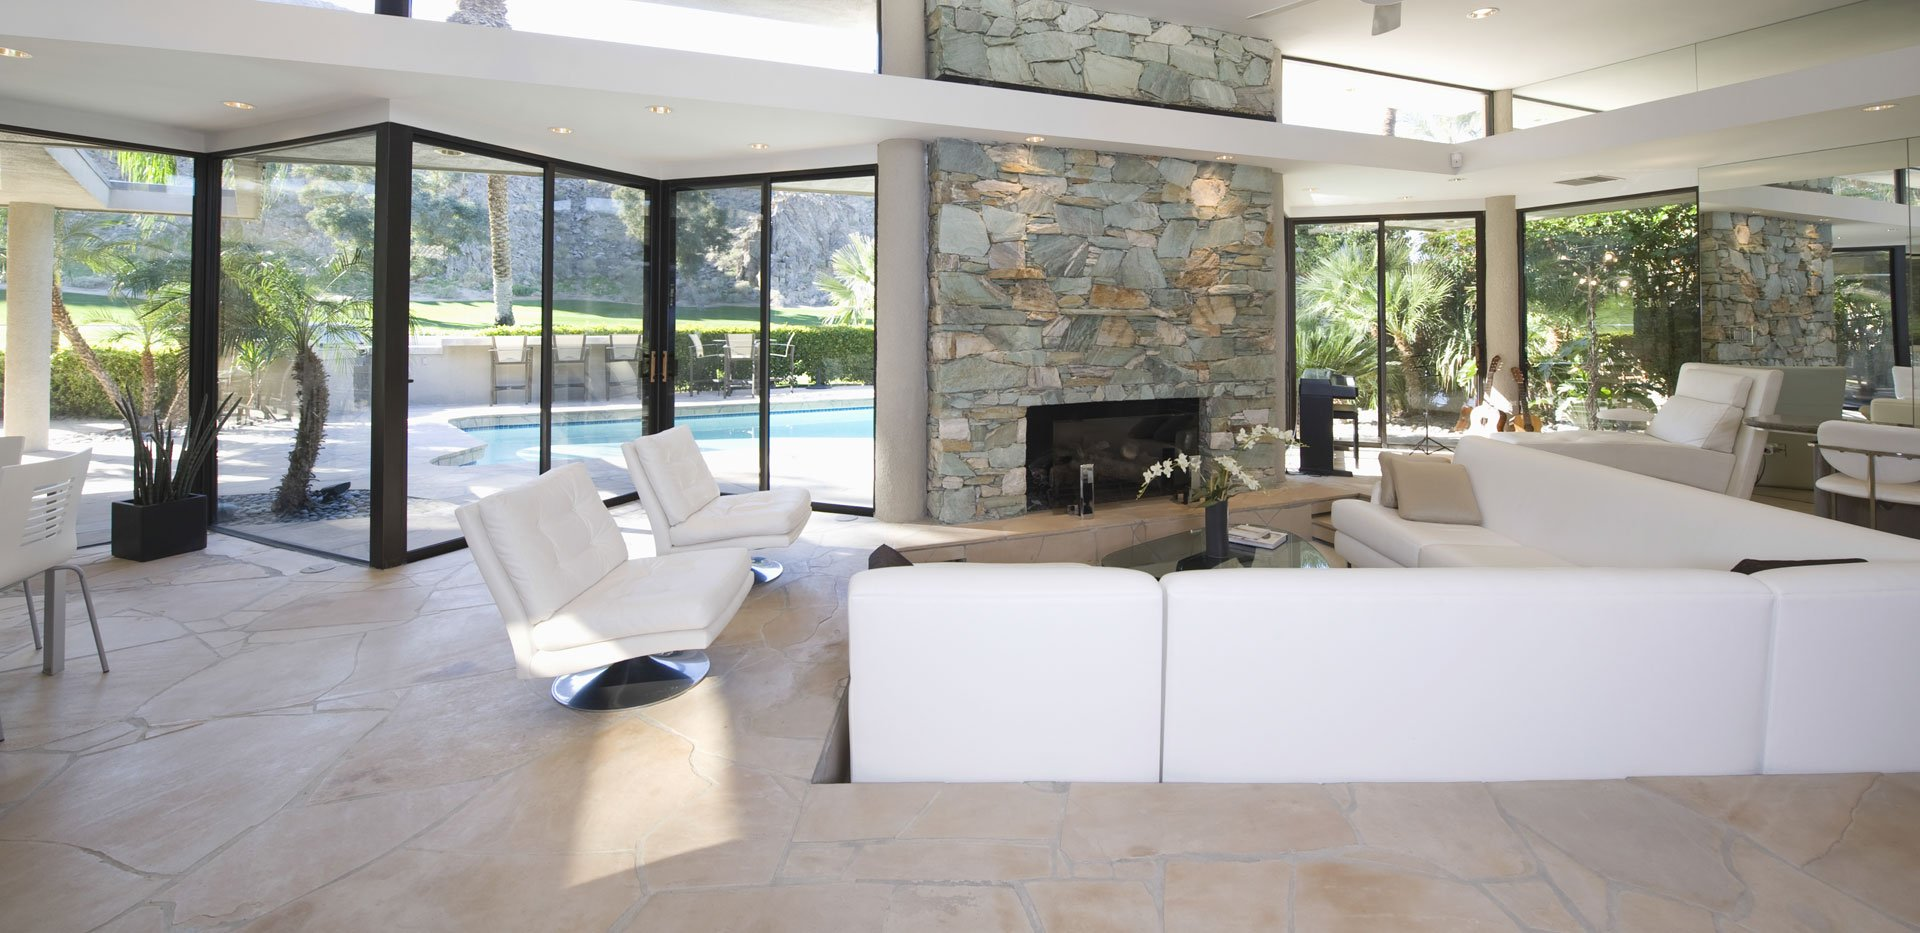 travertine pavers, tiles, copings, mosaics, and more - texas